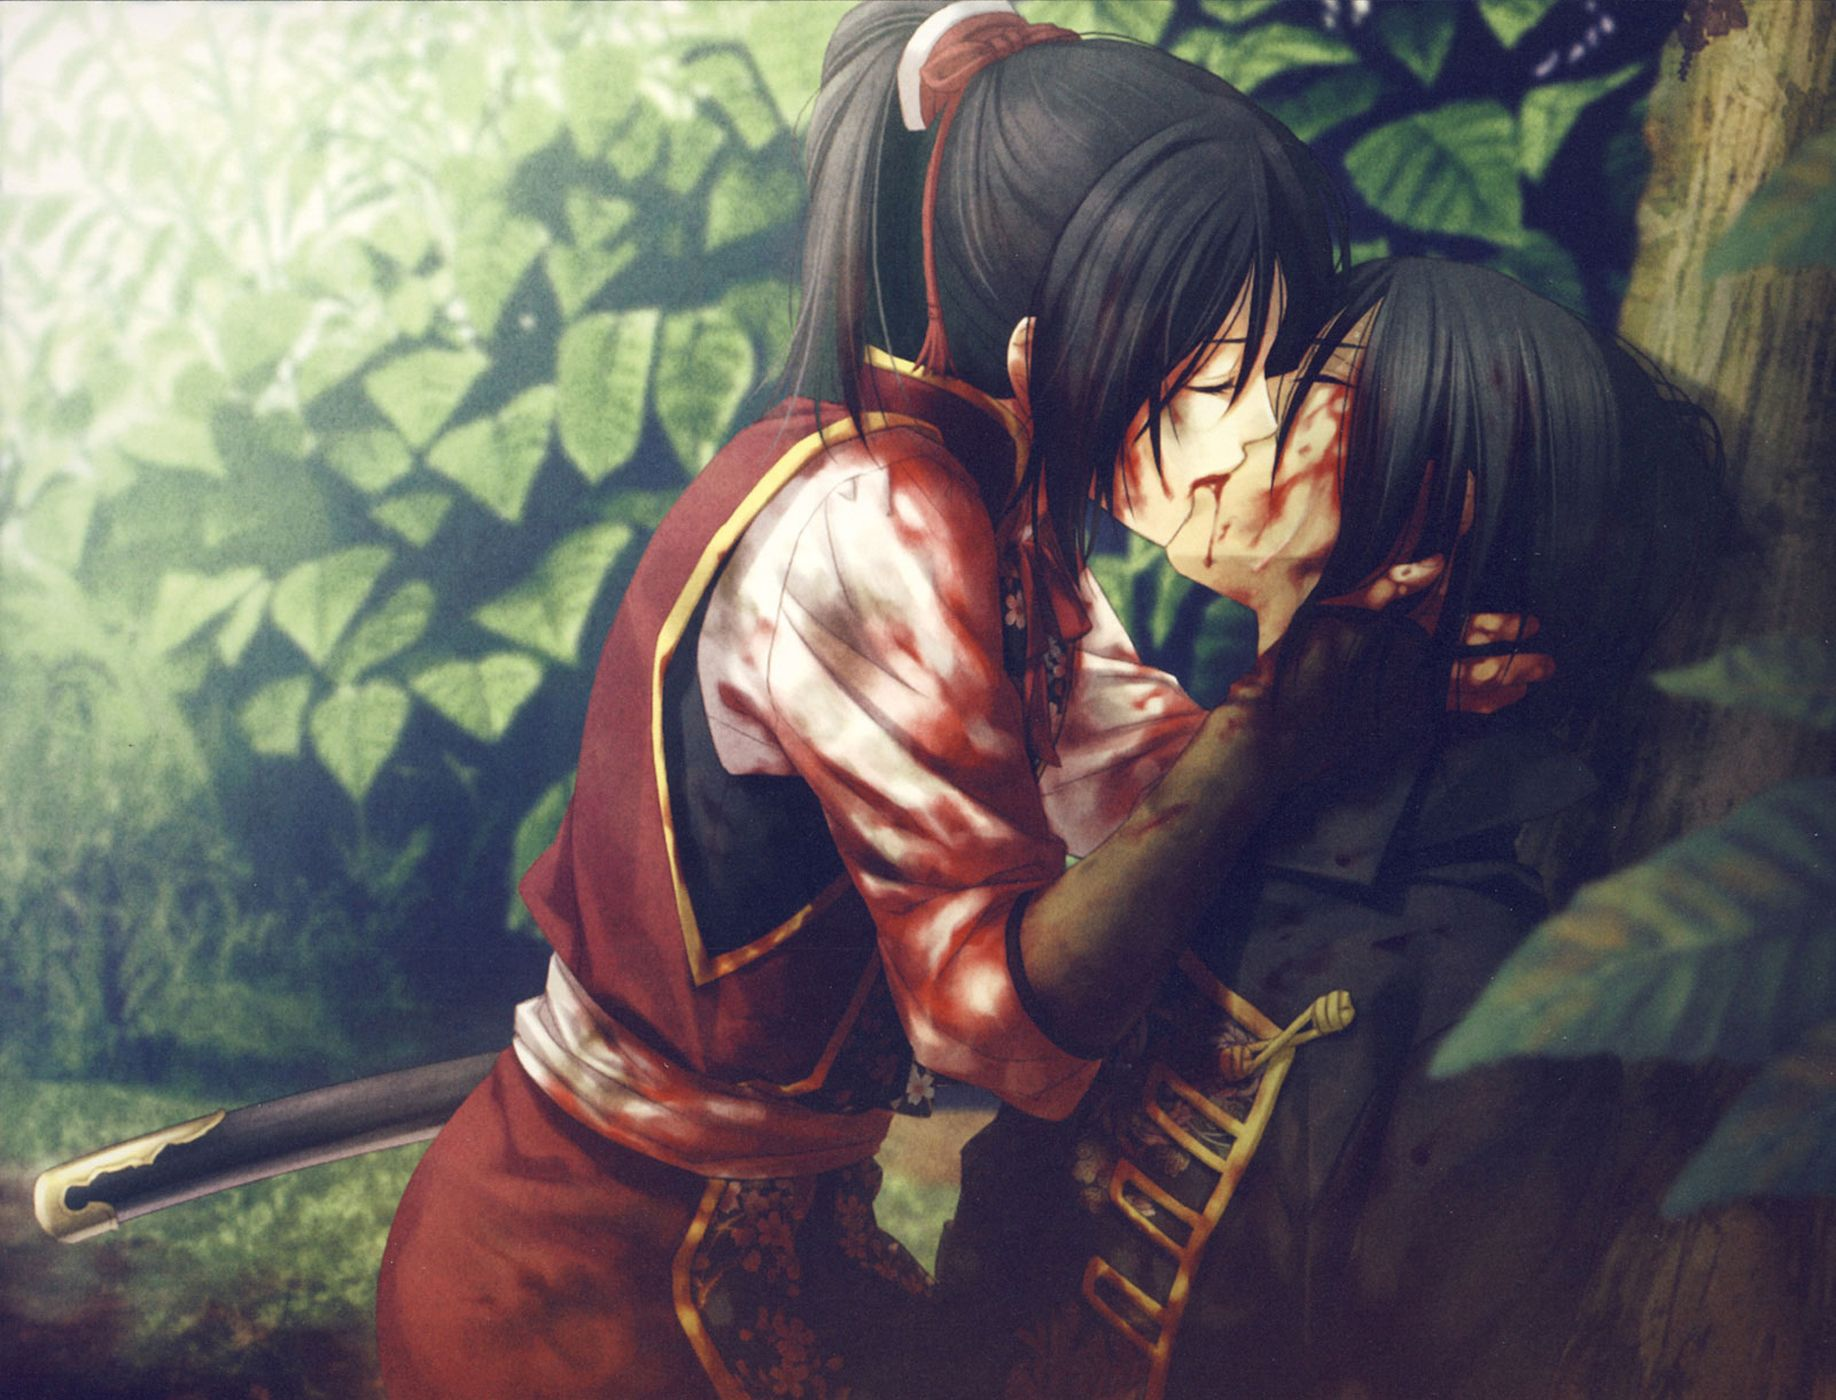 Hakuouki Shinsengumi Kitan Yukimura Chizuru Kiss Anime Blood Love